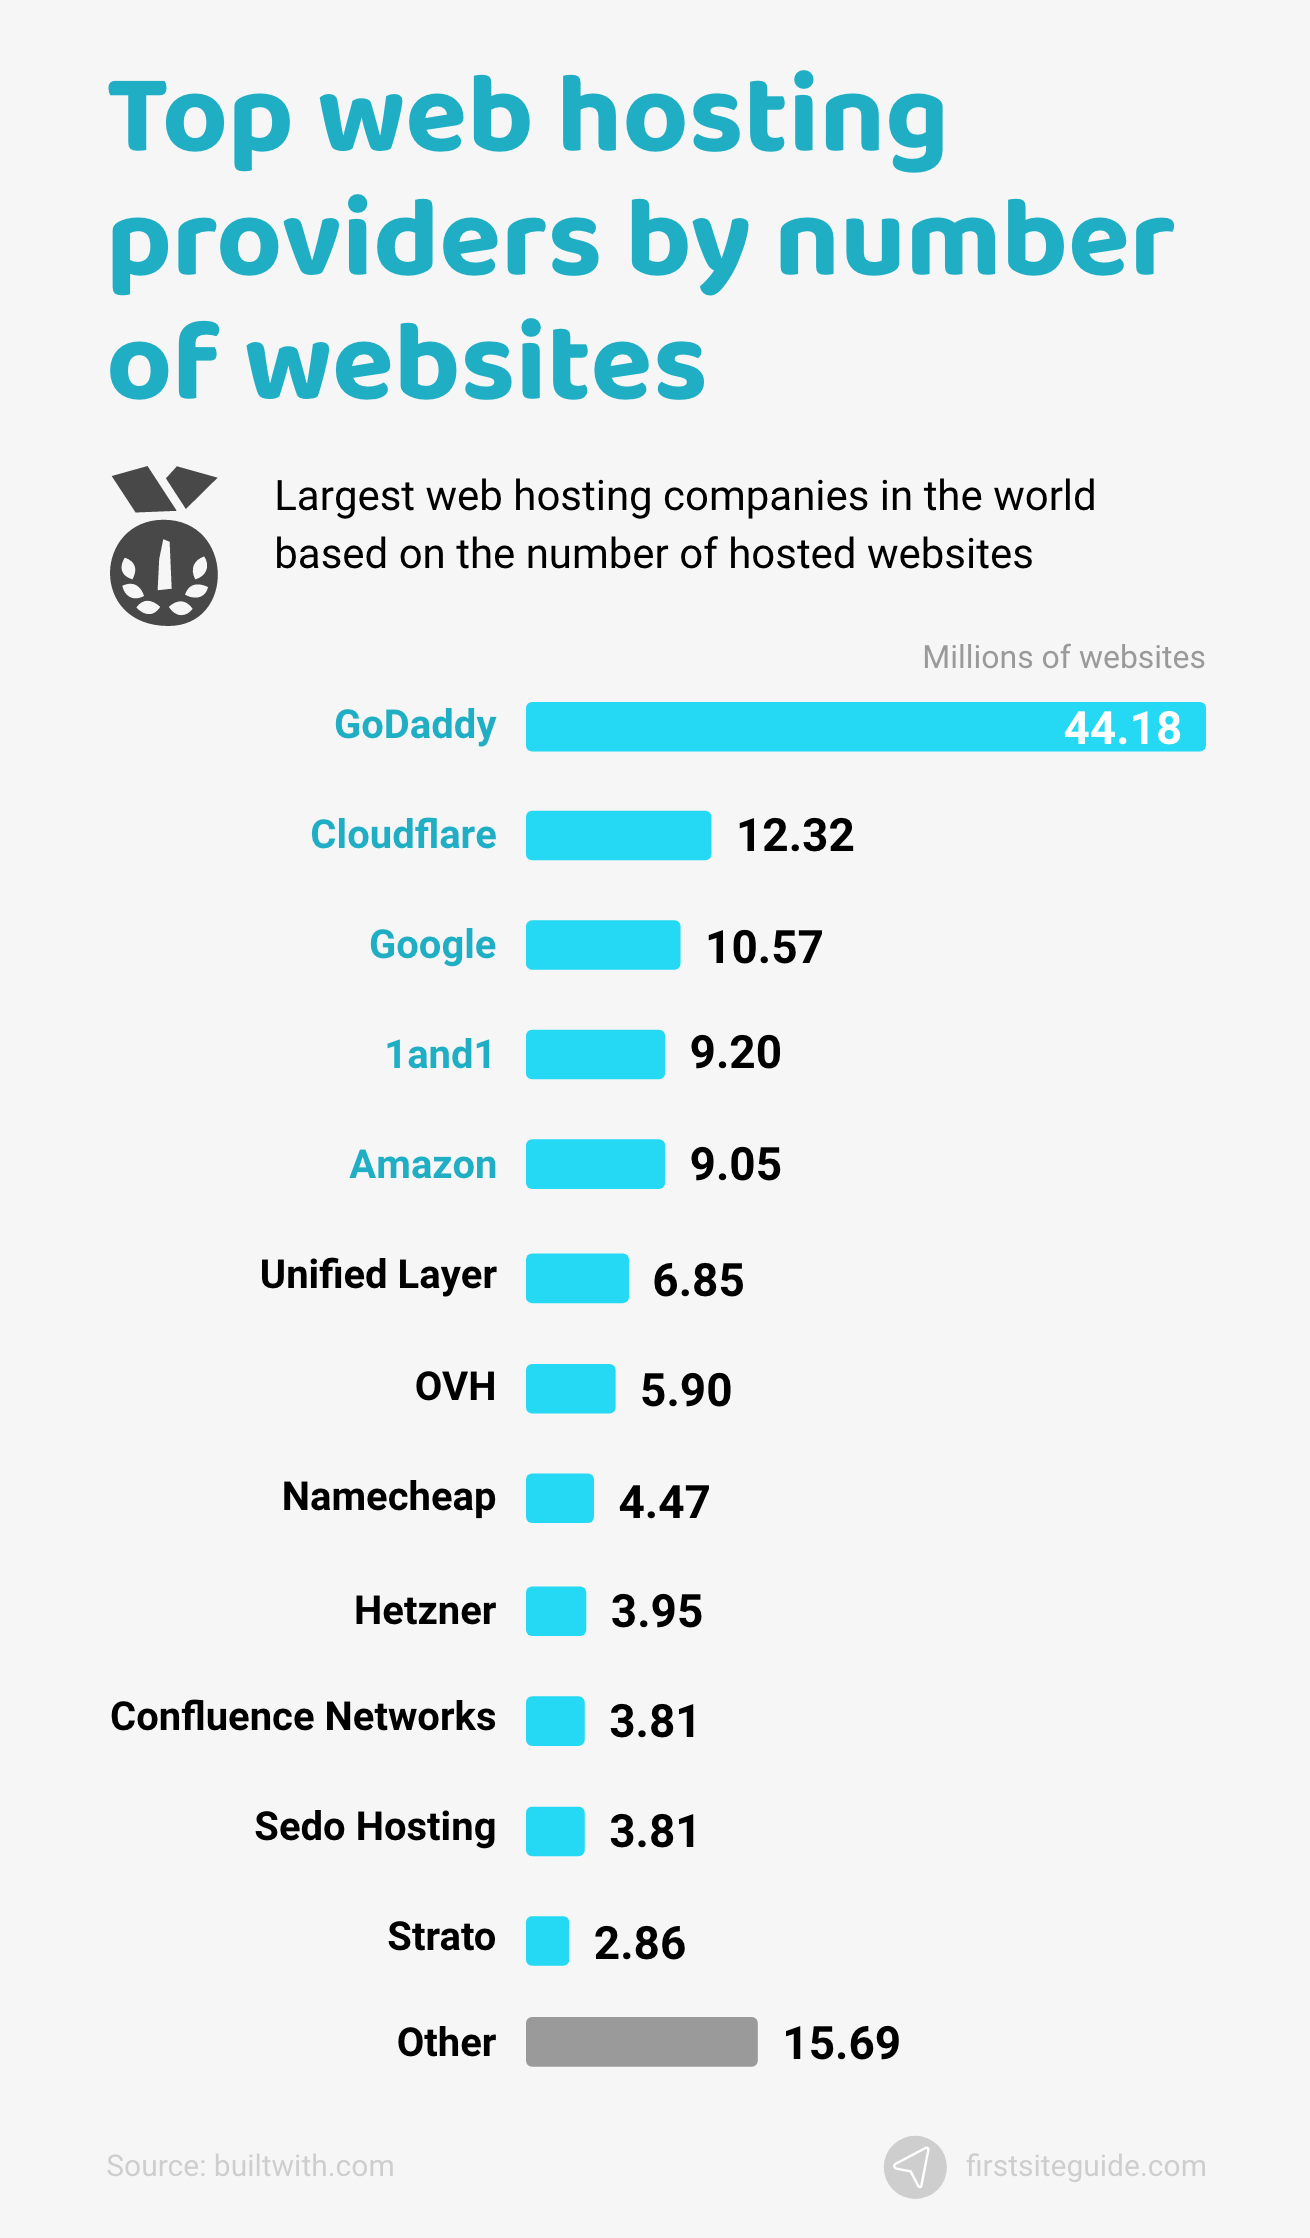 Web hosting providers with the most hosted number of websites